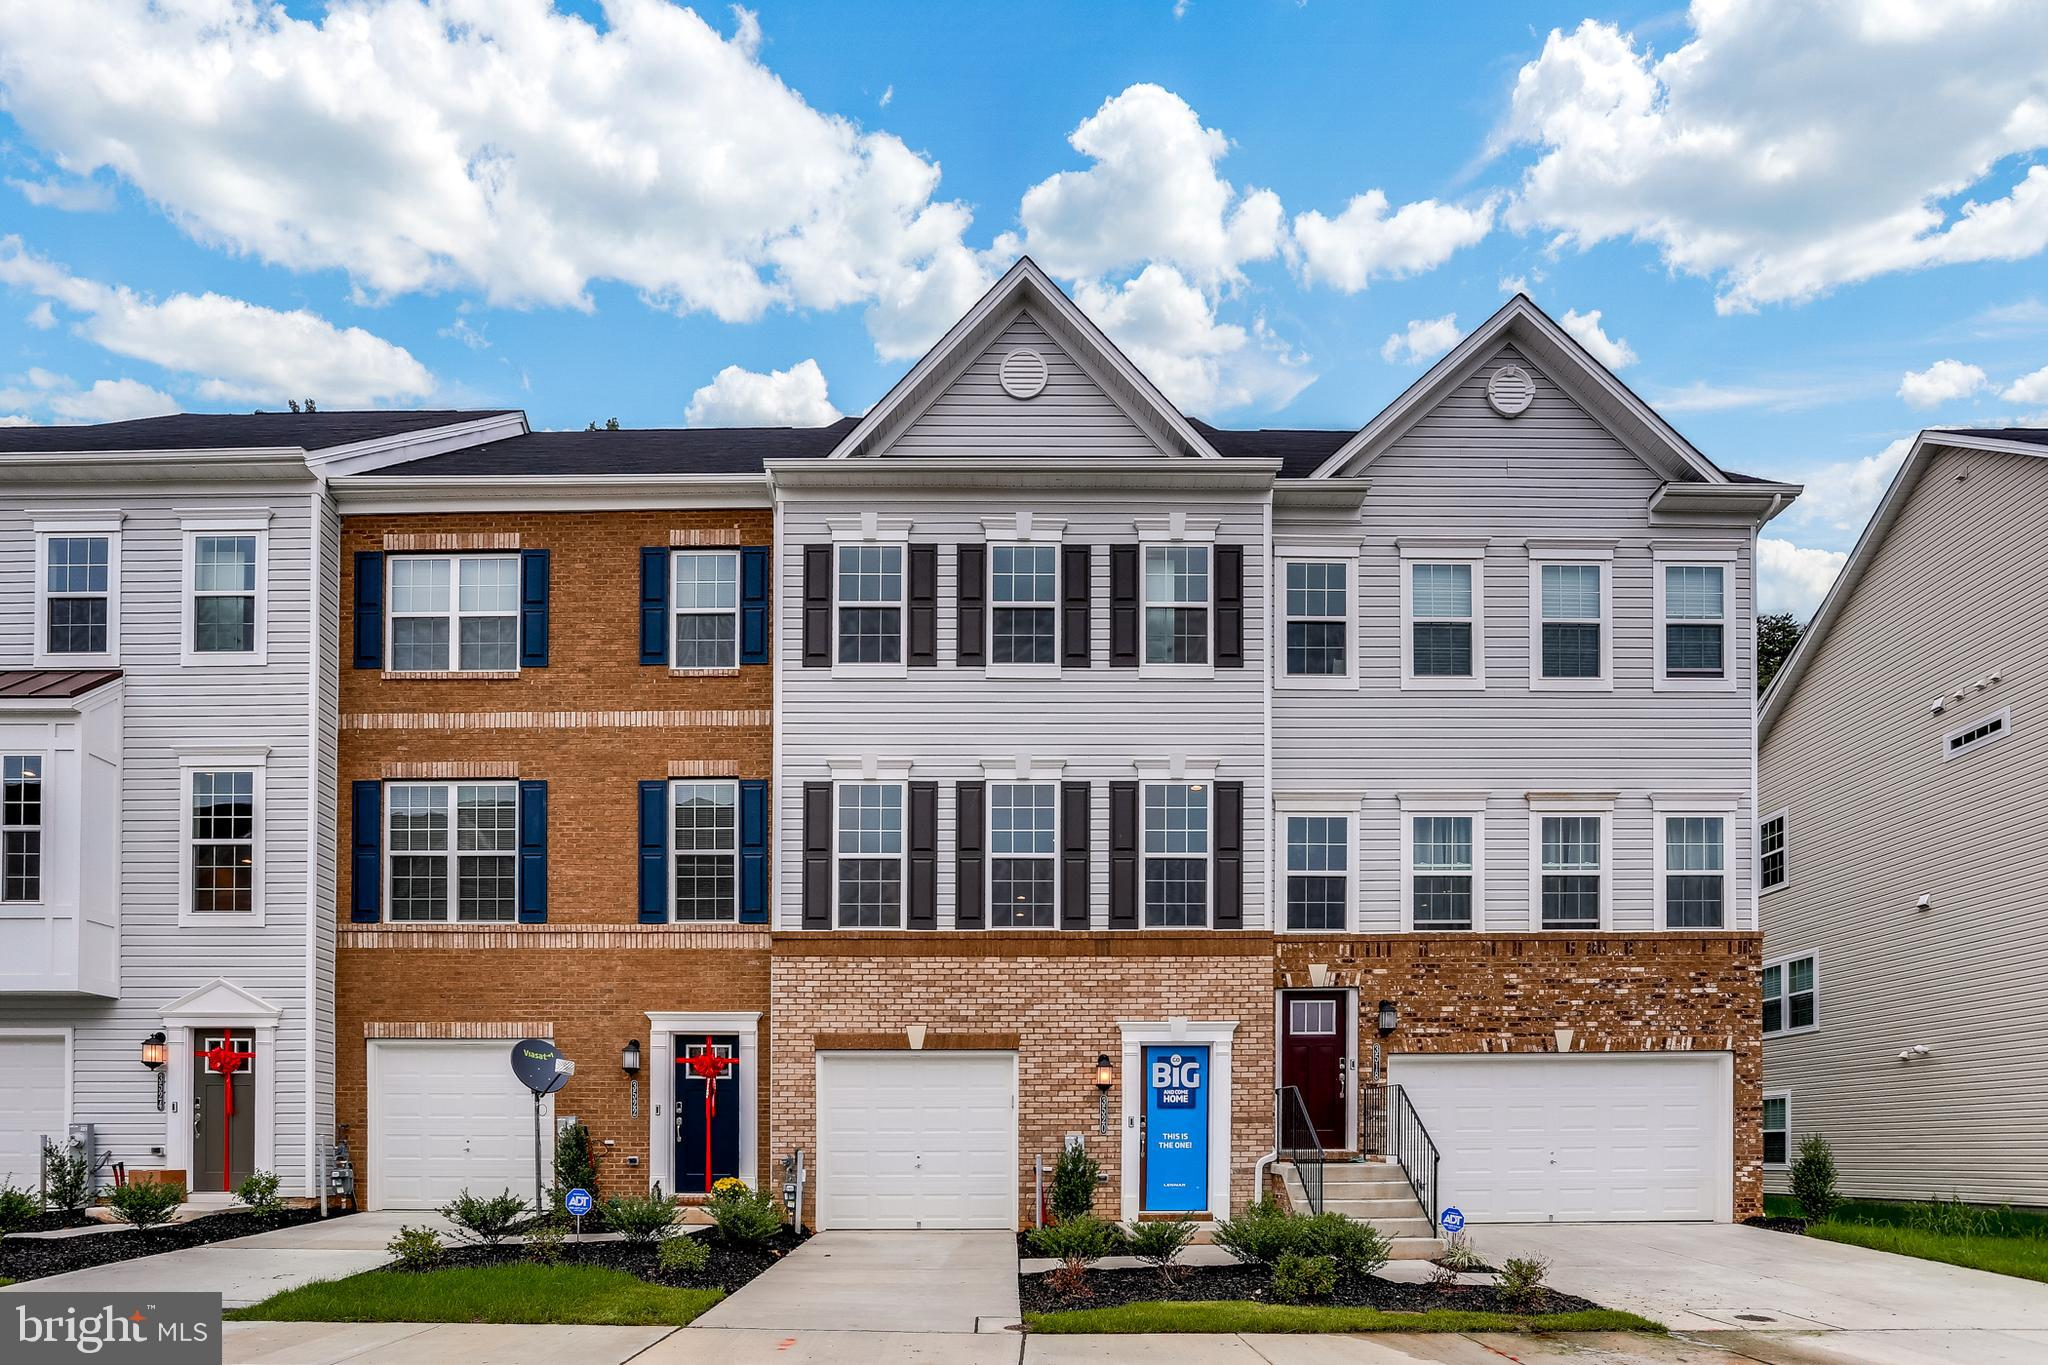 3551 TRIBECA TRAIL, LAUREL, MD 20724